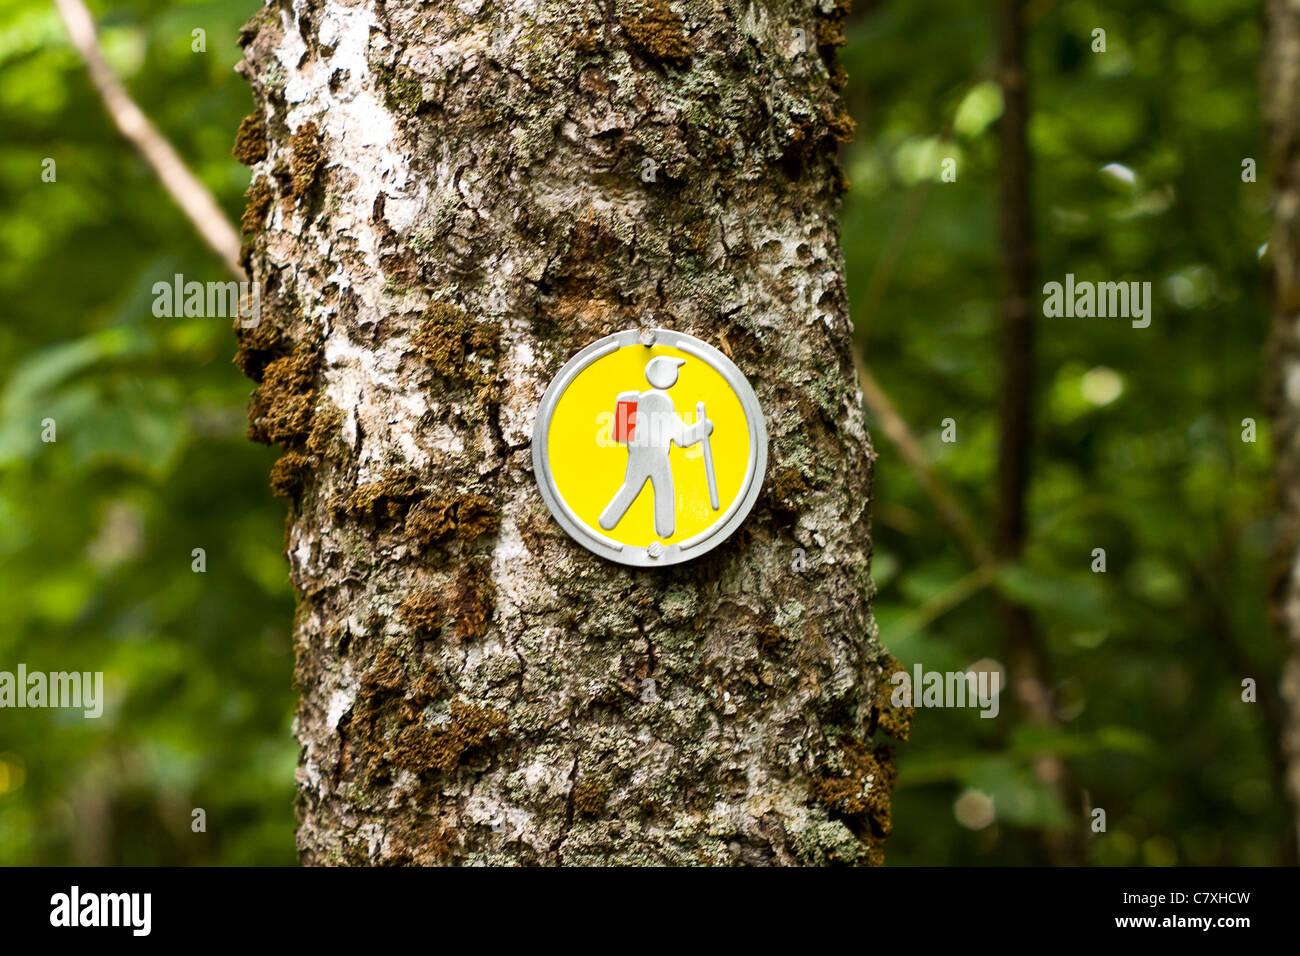 Guidance signs in Fundy National Park, Bay of Fundy, New Brunswick, Canada - Stock Image